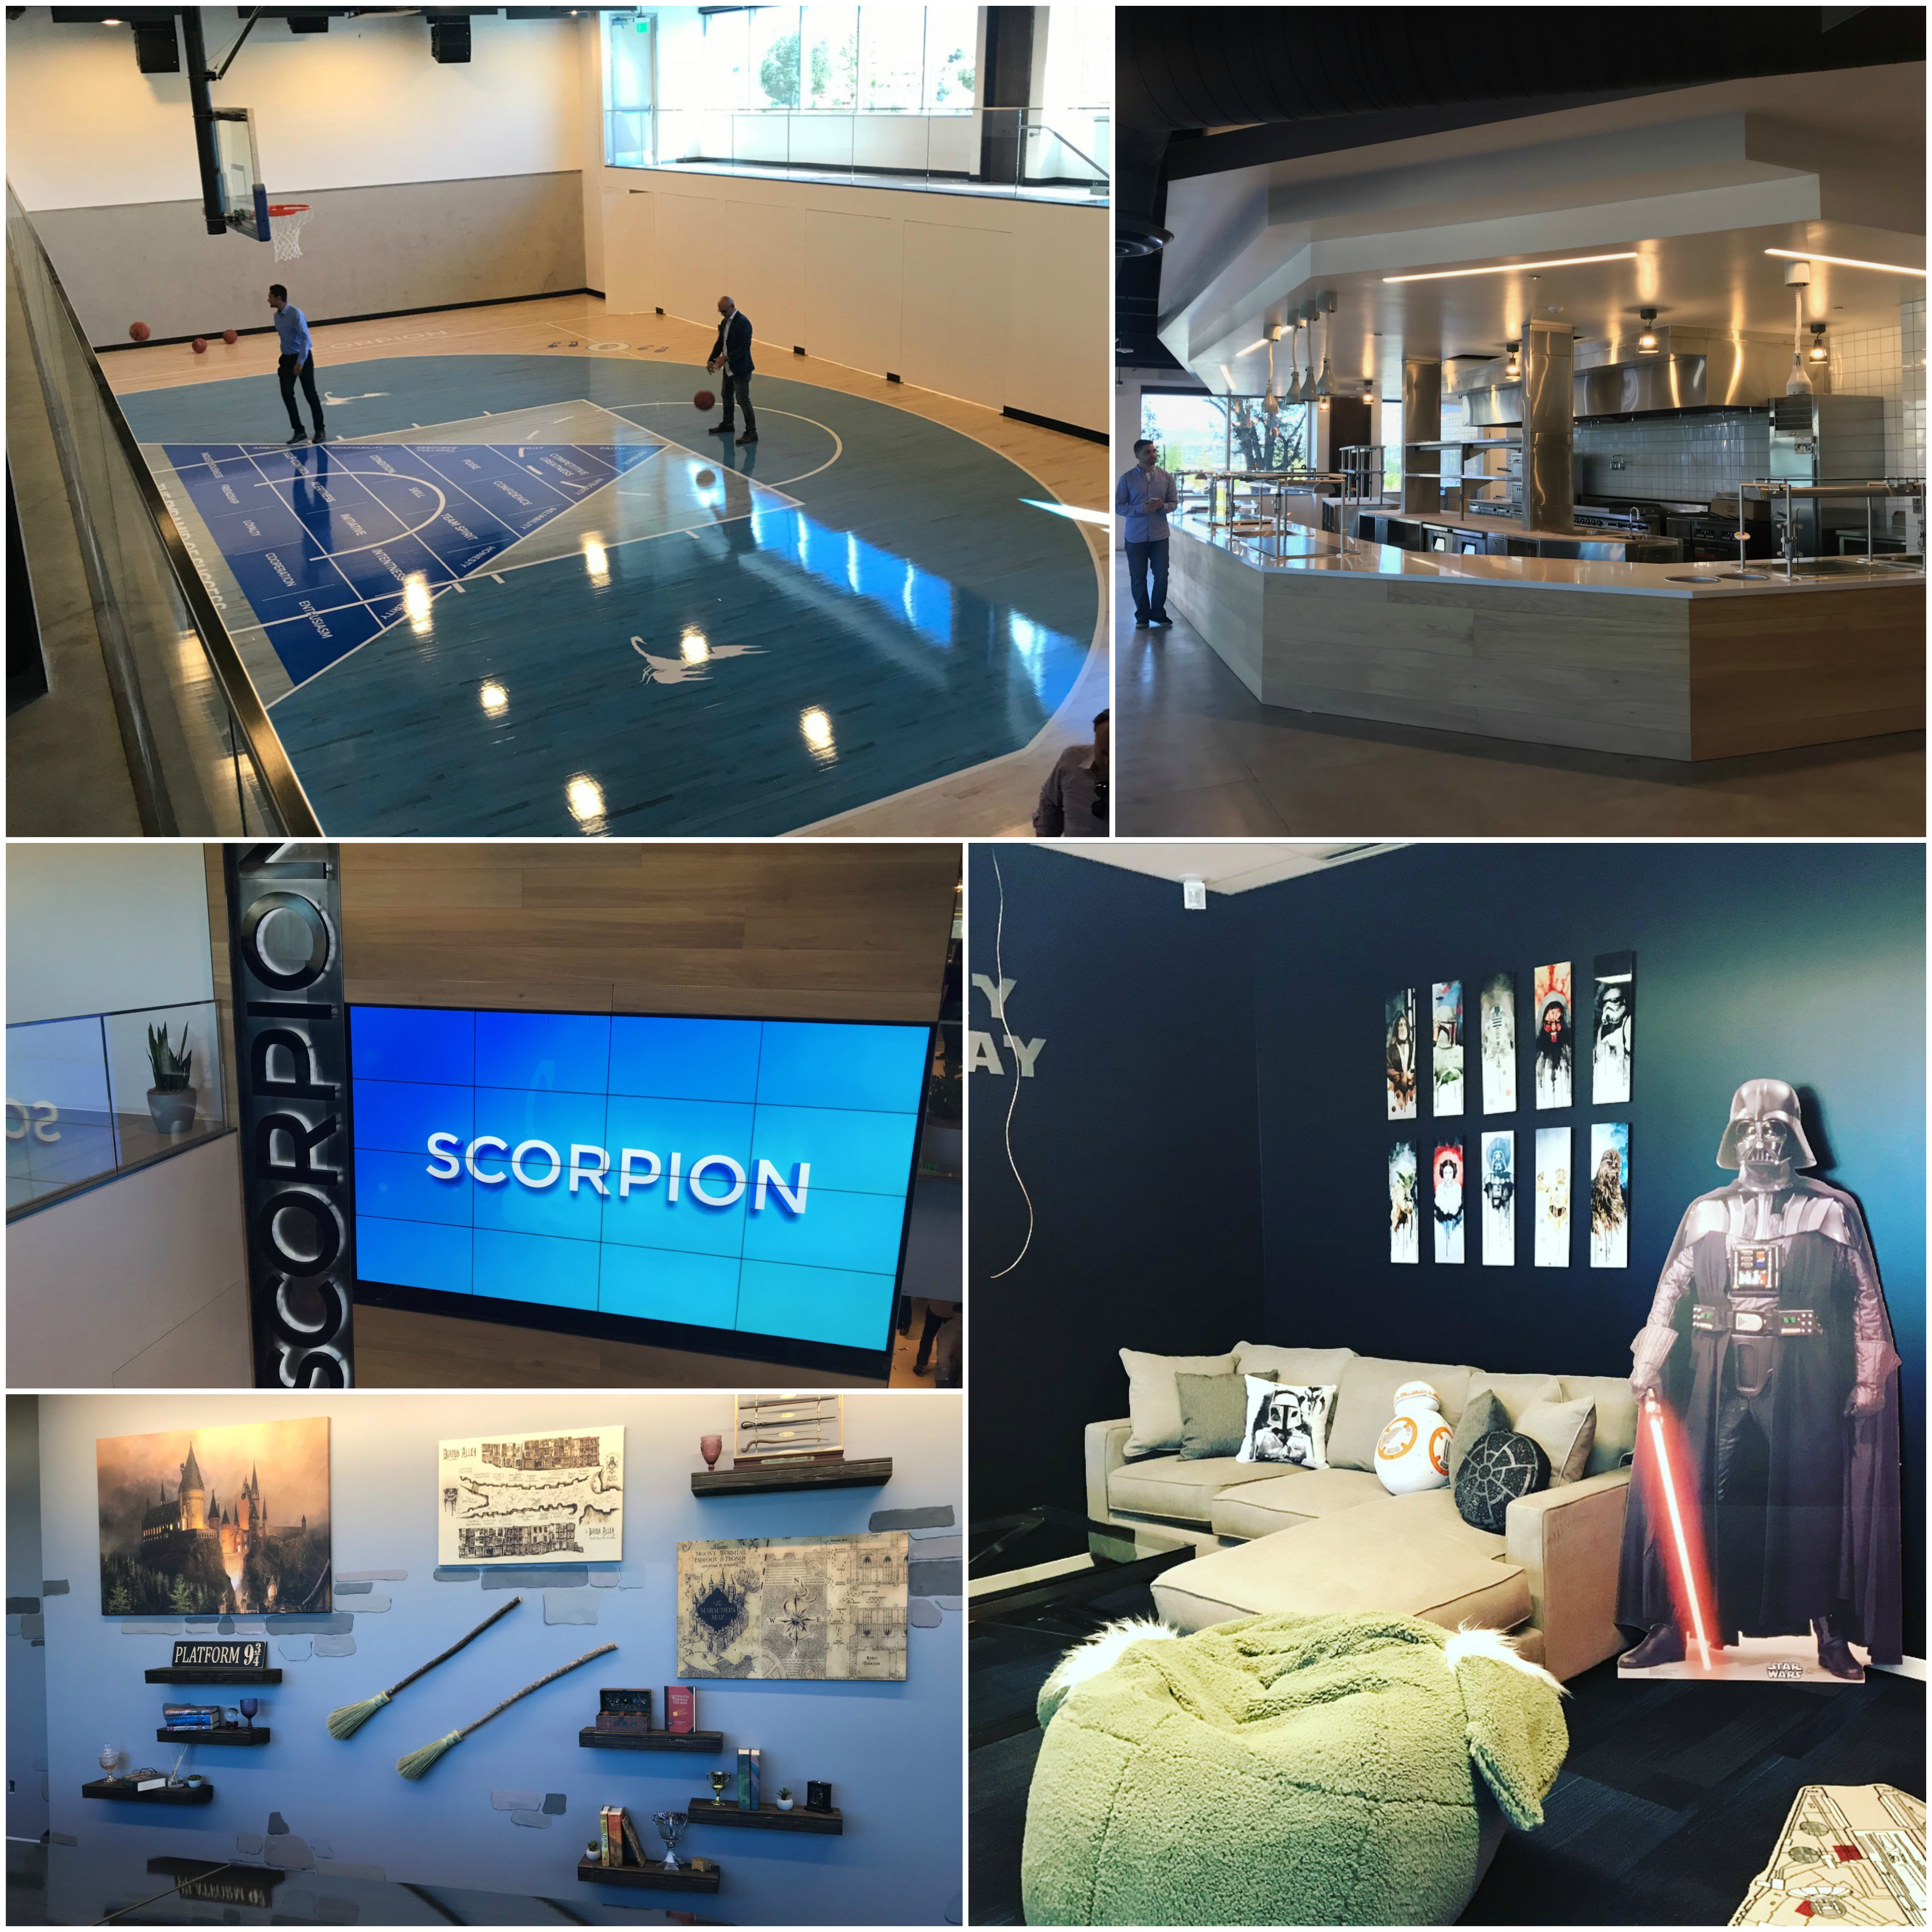 Scorpion opens new HQ in the Santa Clarita Valley